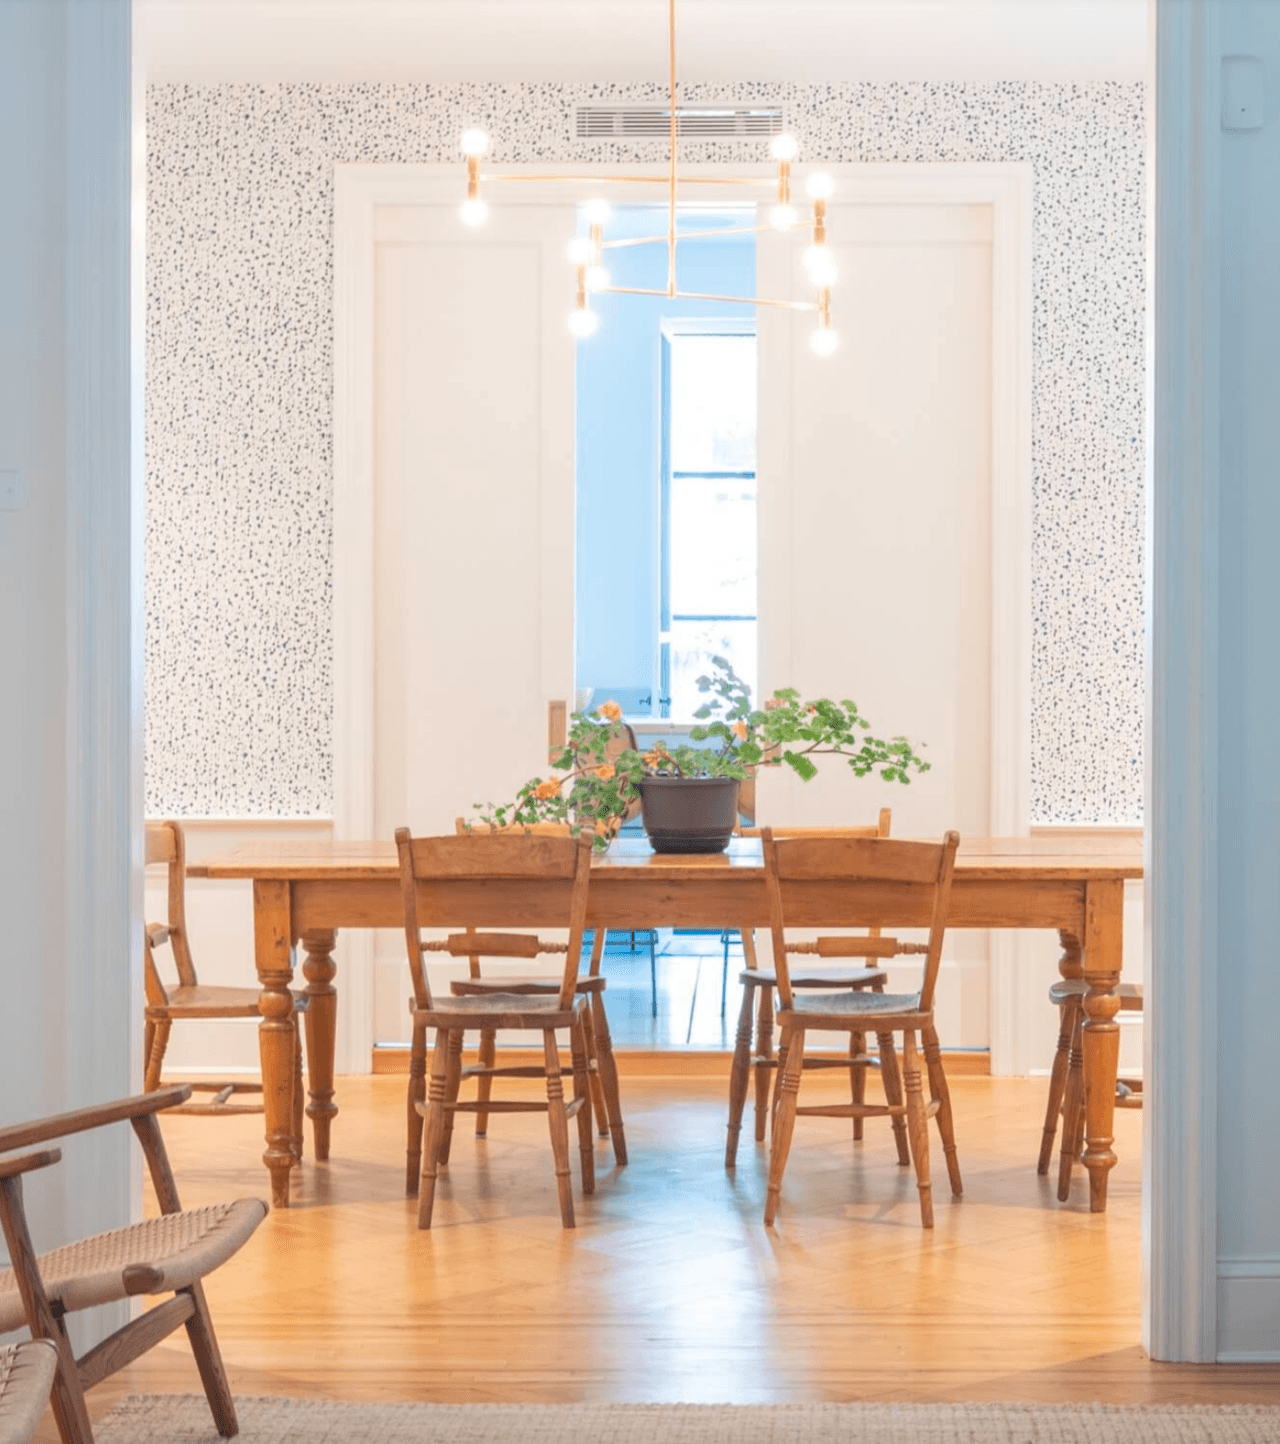 Snow (Blue) Wallpaper | Dining Room Decor | Hygge & West Press